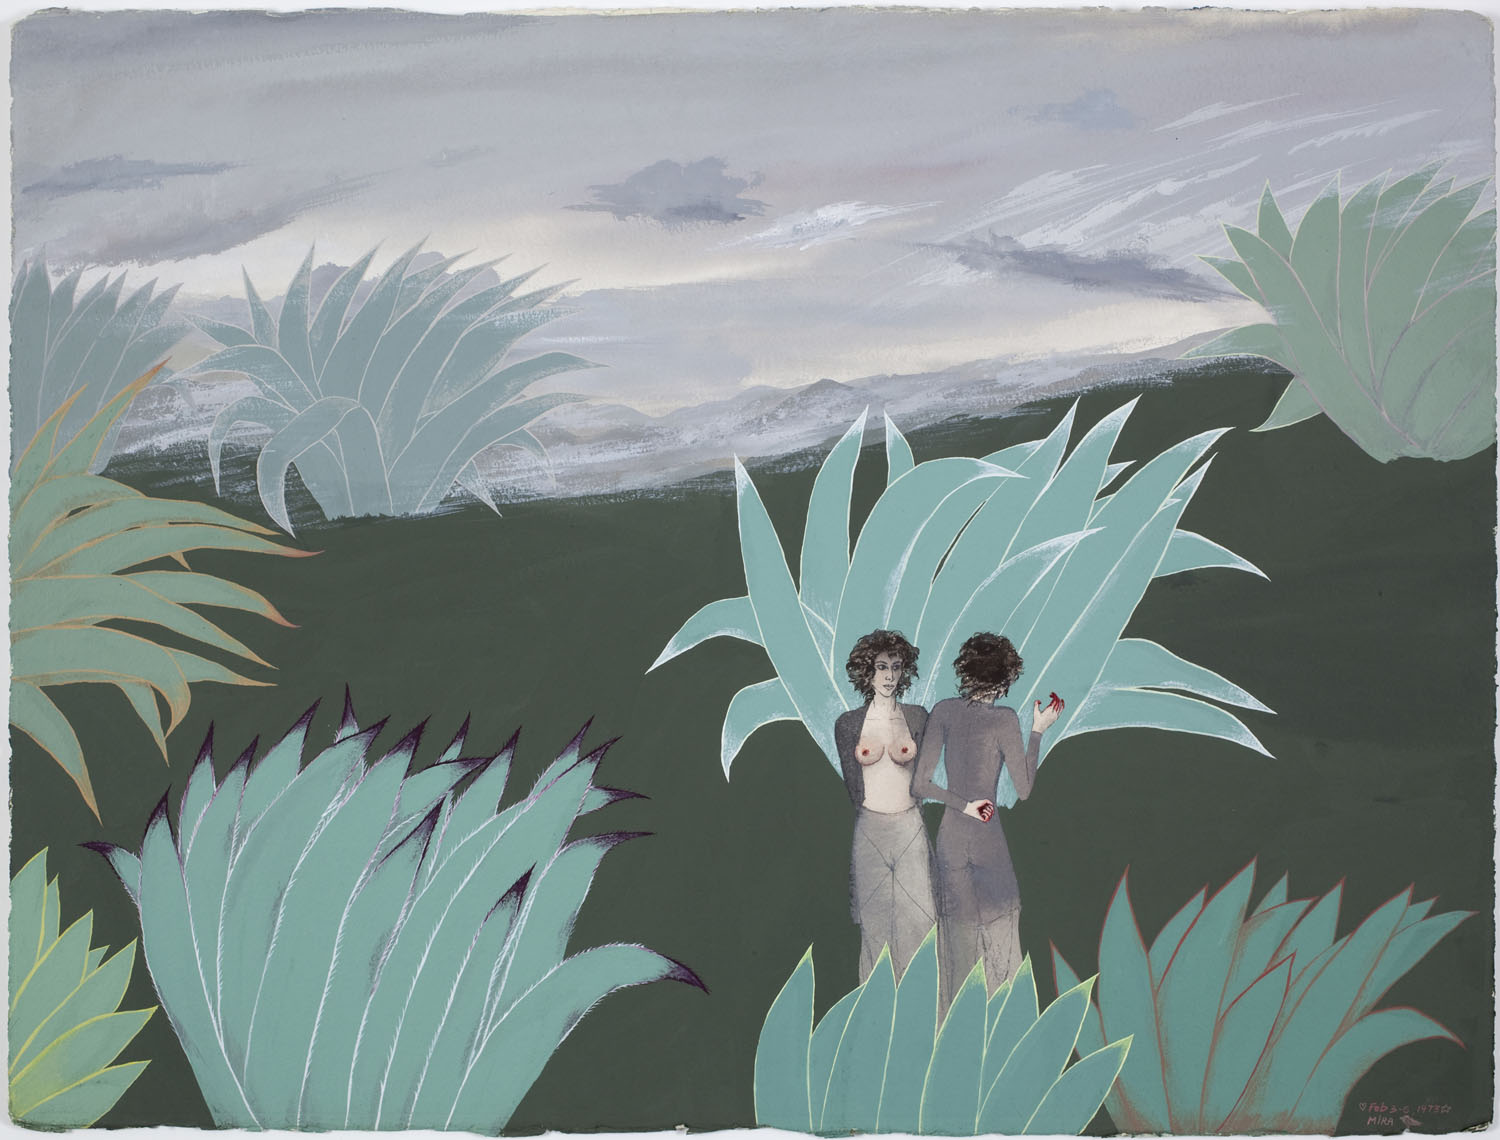 Mira Schor   The Two Miras , February 3-6, 1973  Gouache on Arches paper  22 x 30 inches